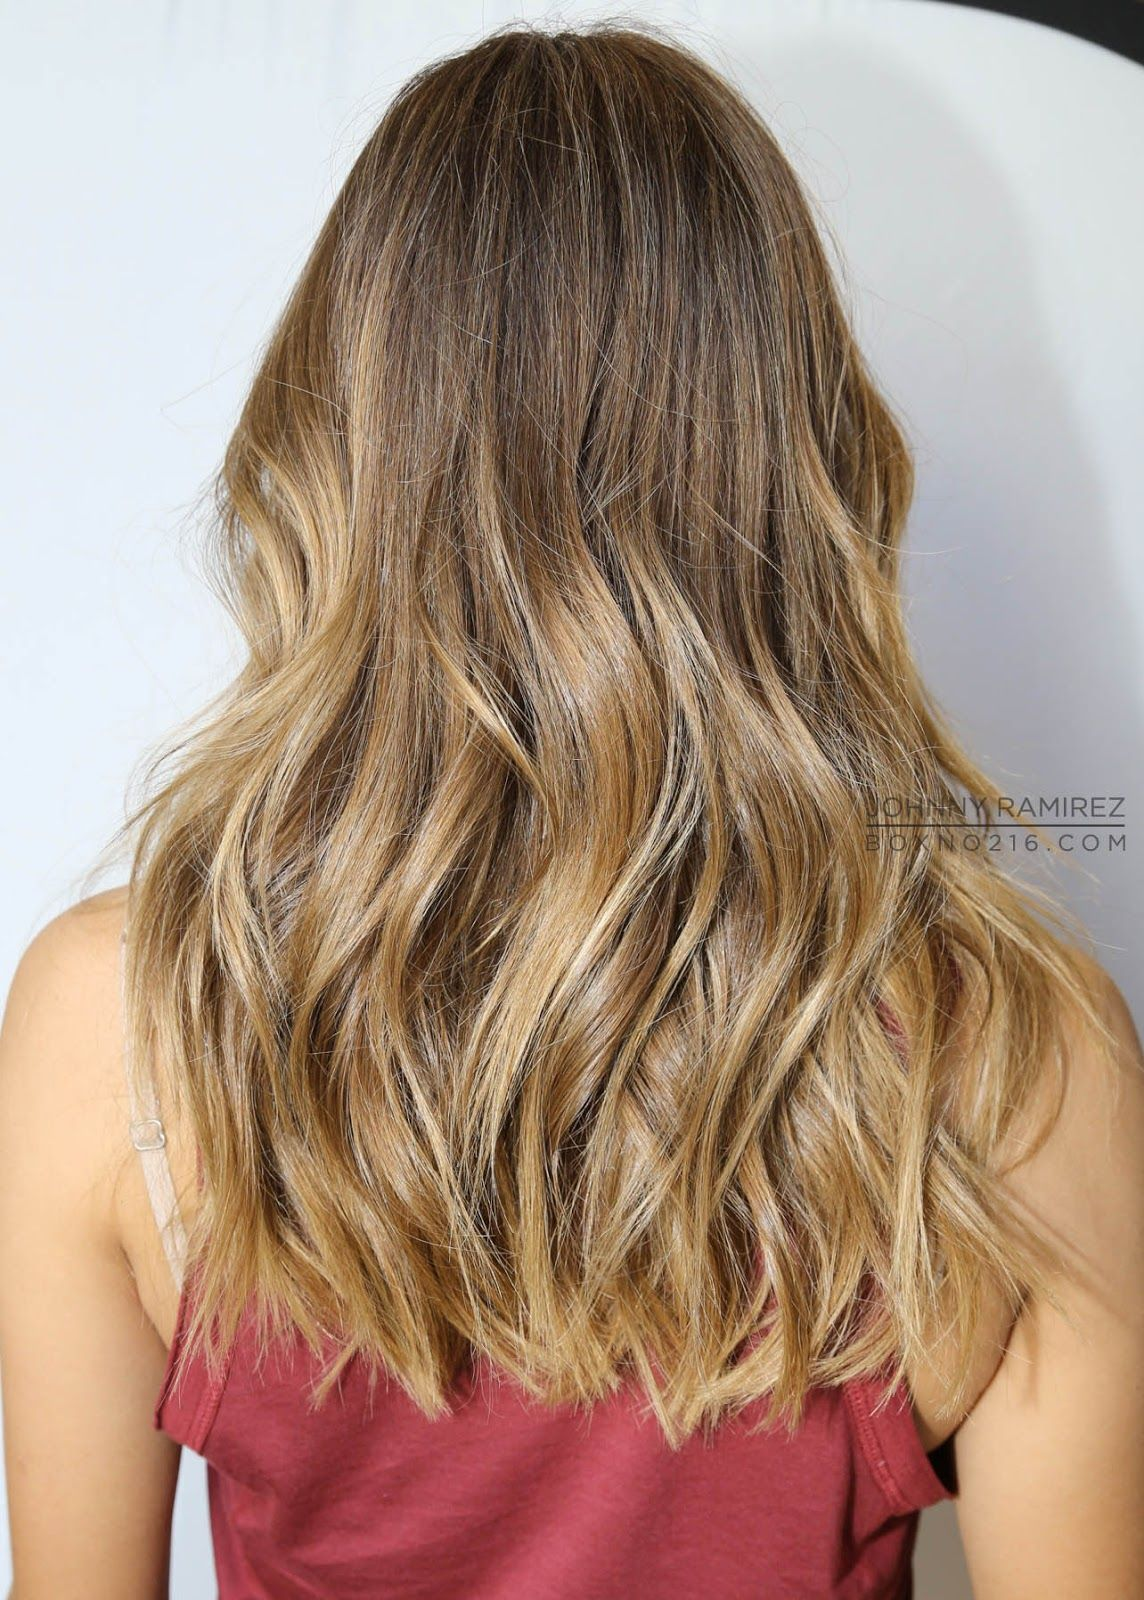 Box No 216 Color By Johnny Ramirez Www Boxno216 Com For Appointments Mailto Johnnyramirezcolor Gmail Com Or Call 310 775 Hair Inspiration Hair Hair Beauty